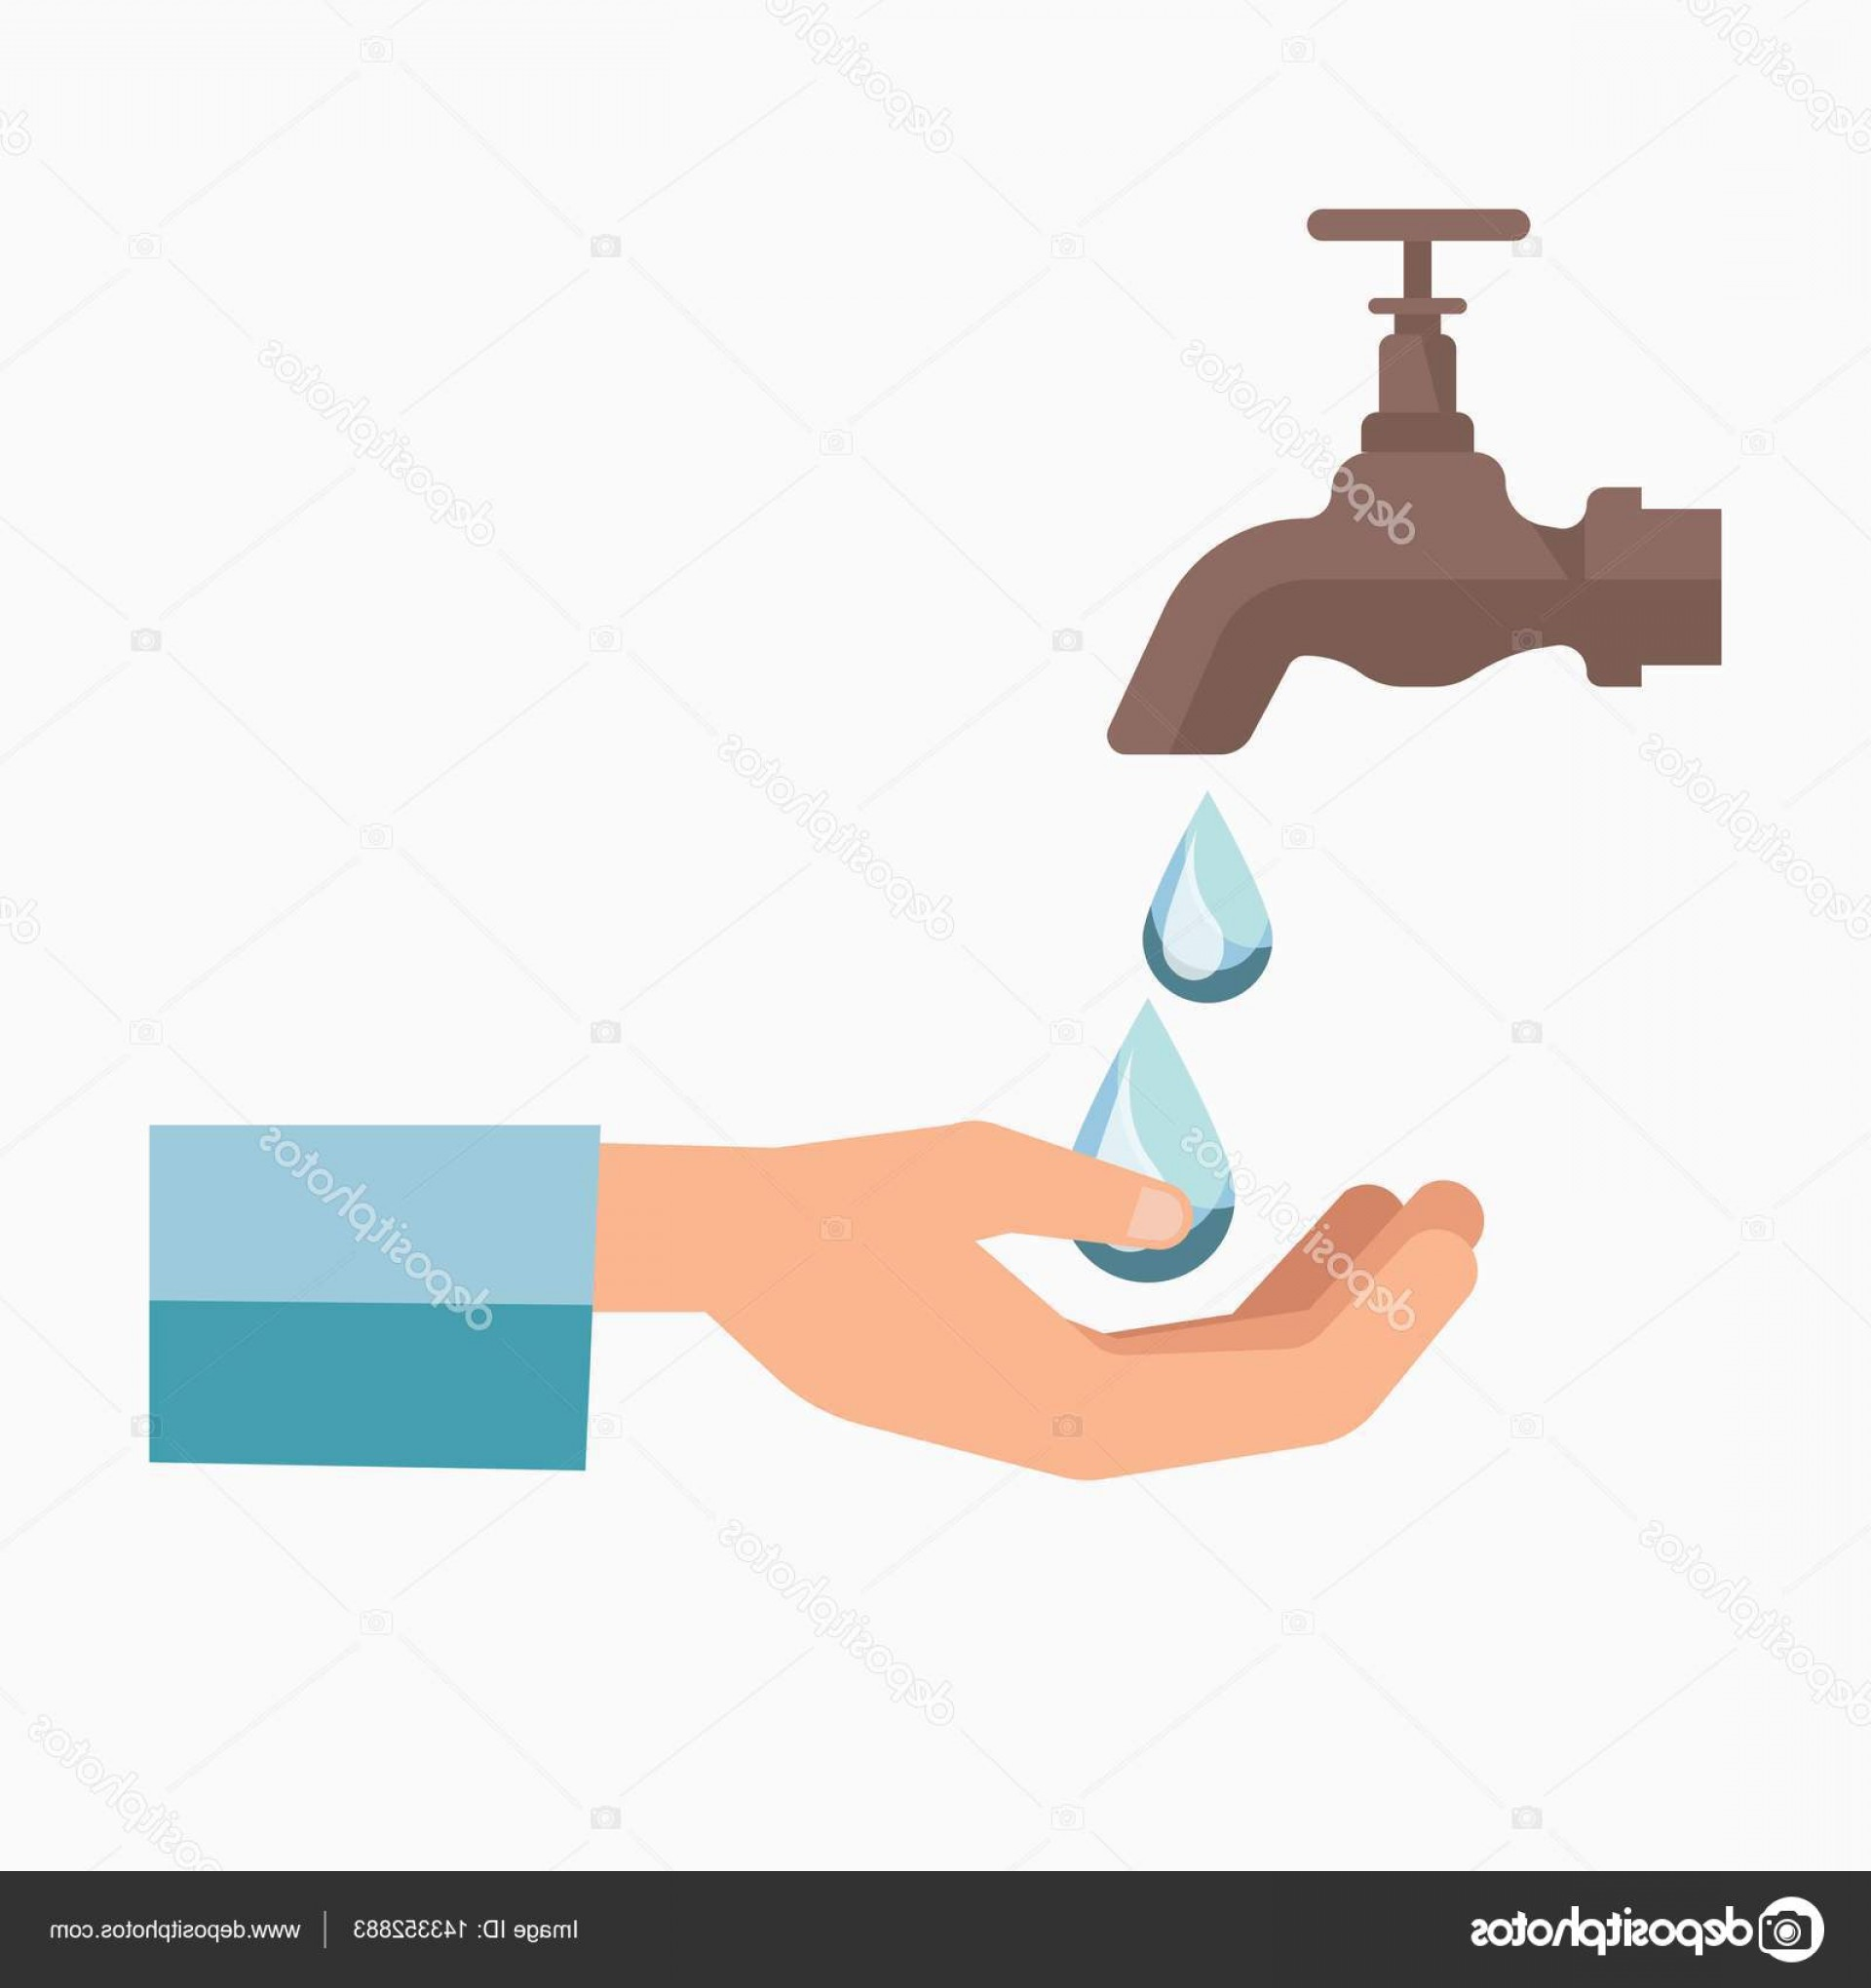 Charity Meter Vector: Stock Illustration Charity Symbol Of Water Scarcity